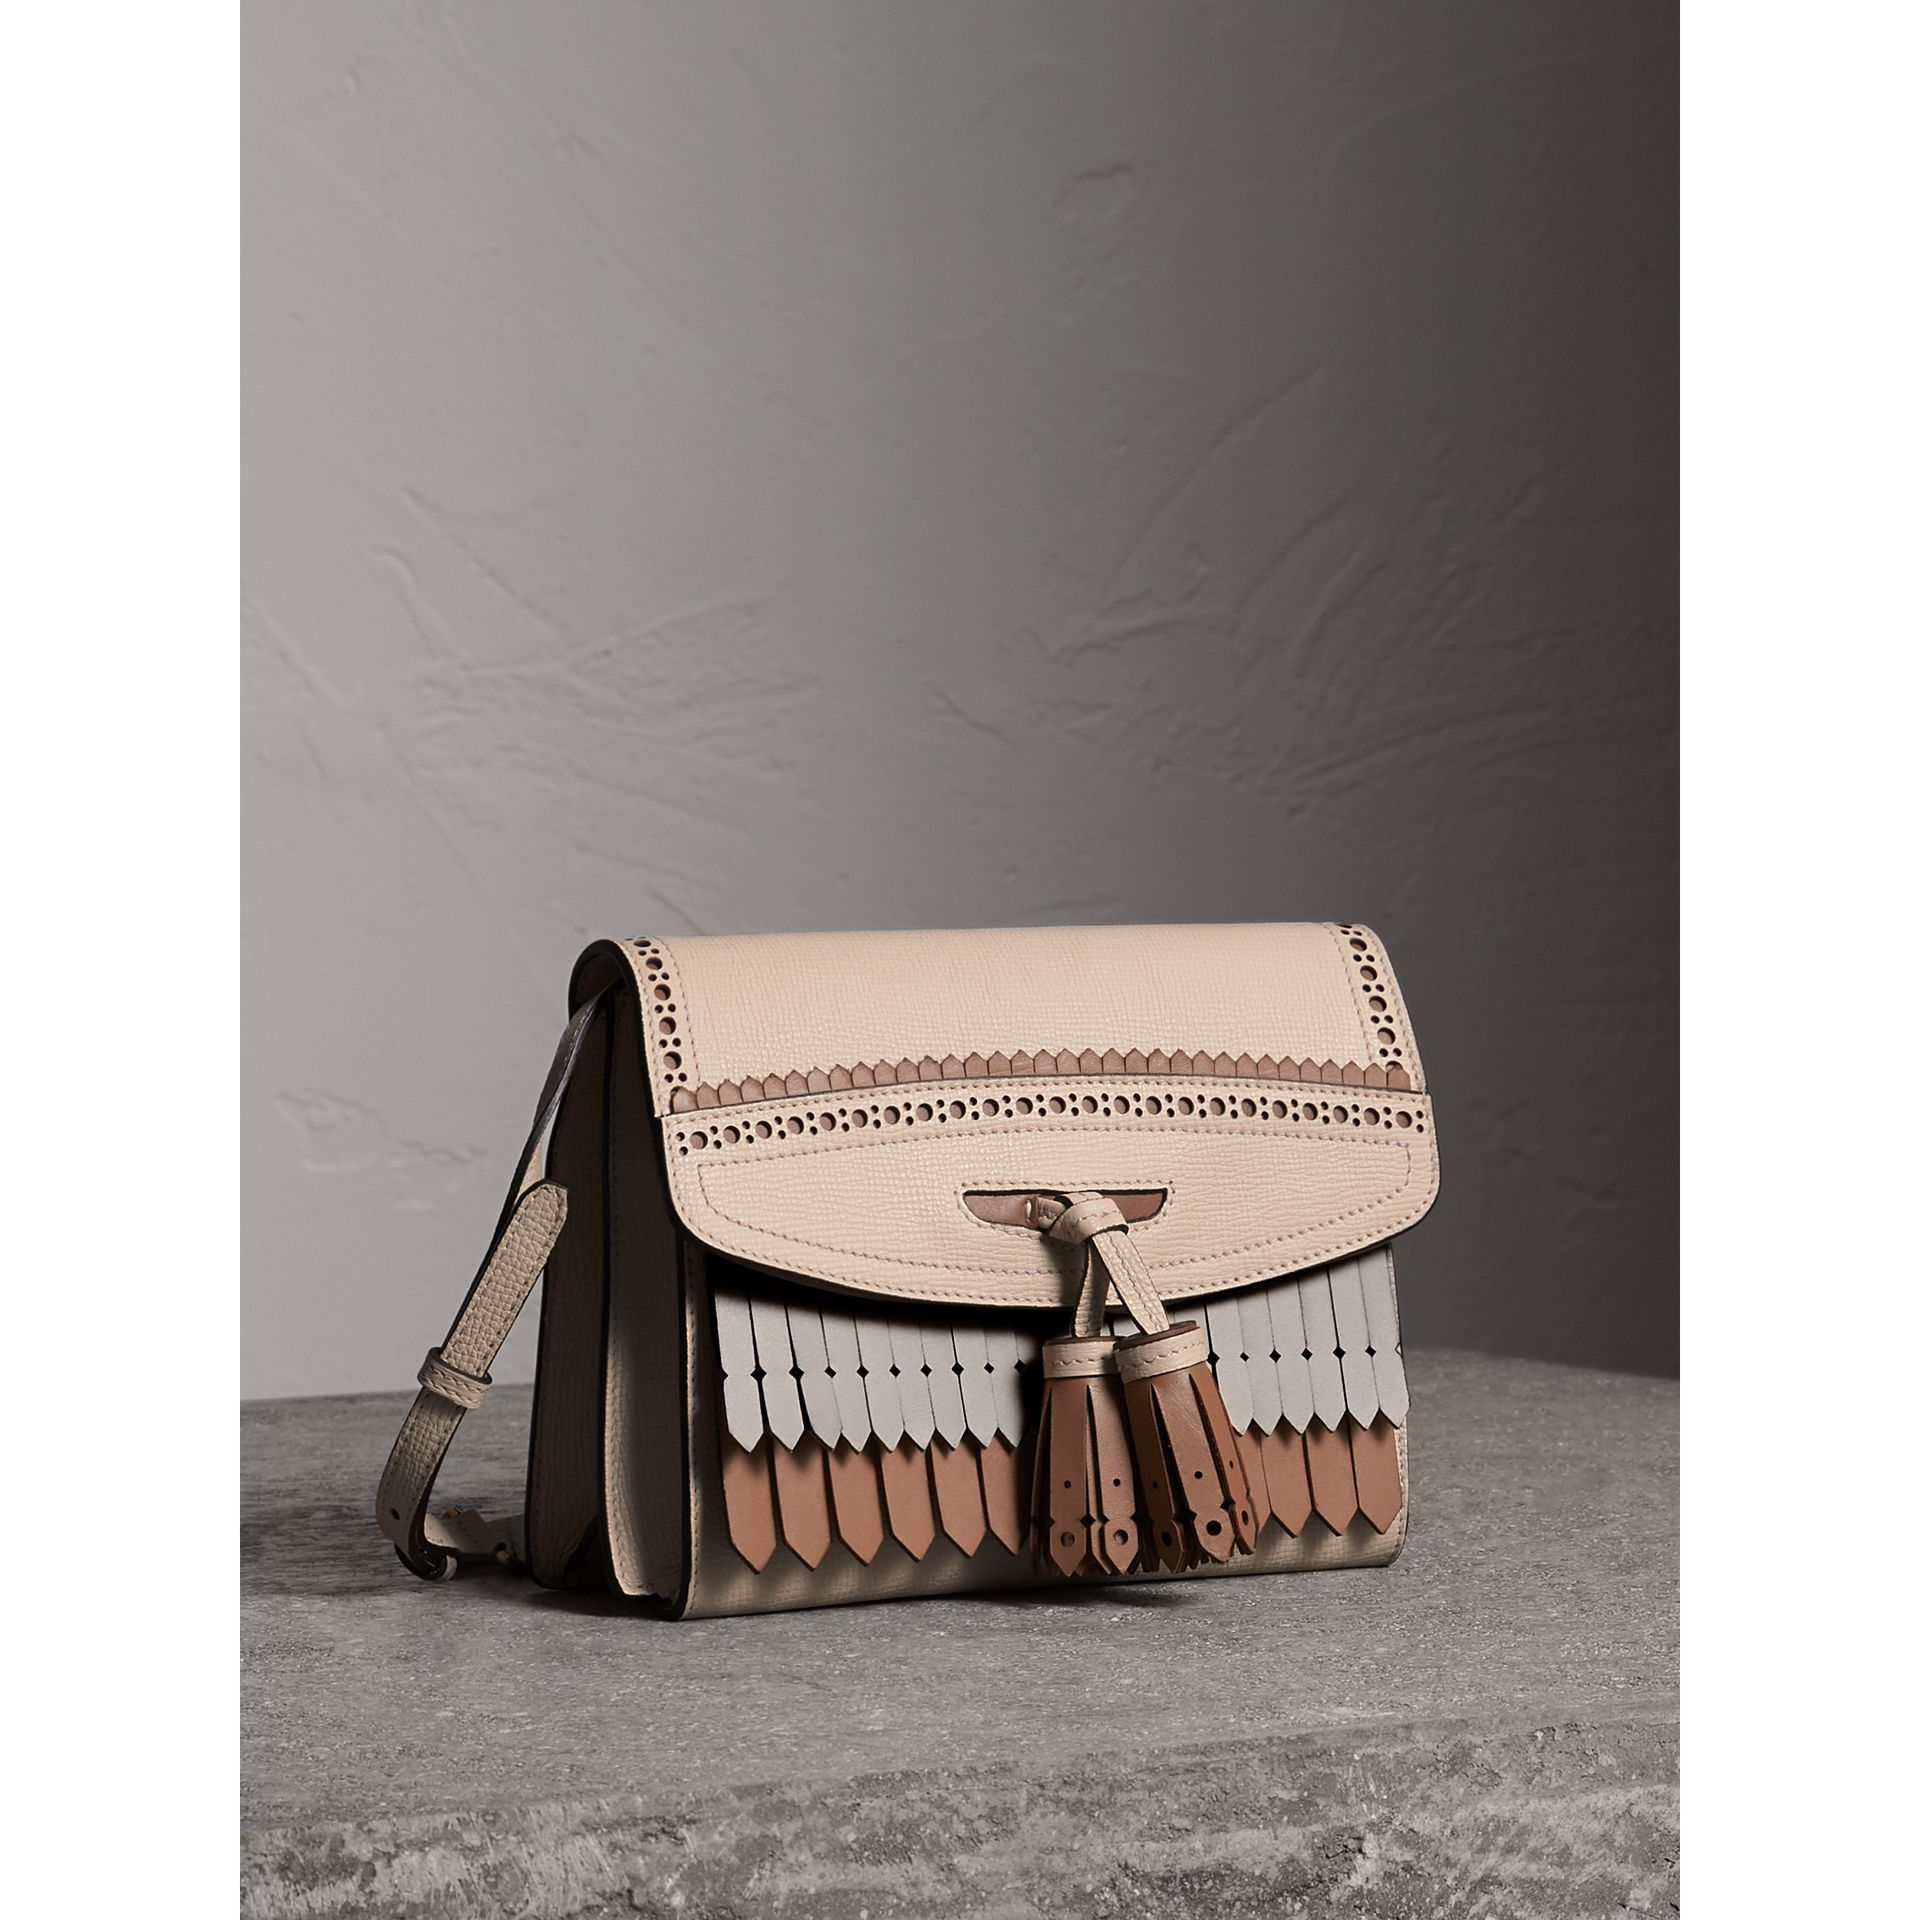 Brogue and Fringe Detail Leather Crossbody Bag in Limestone - Women | Burberry - gallery image 5